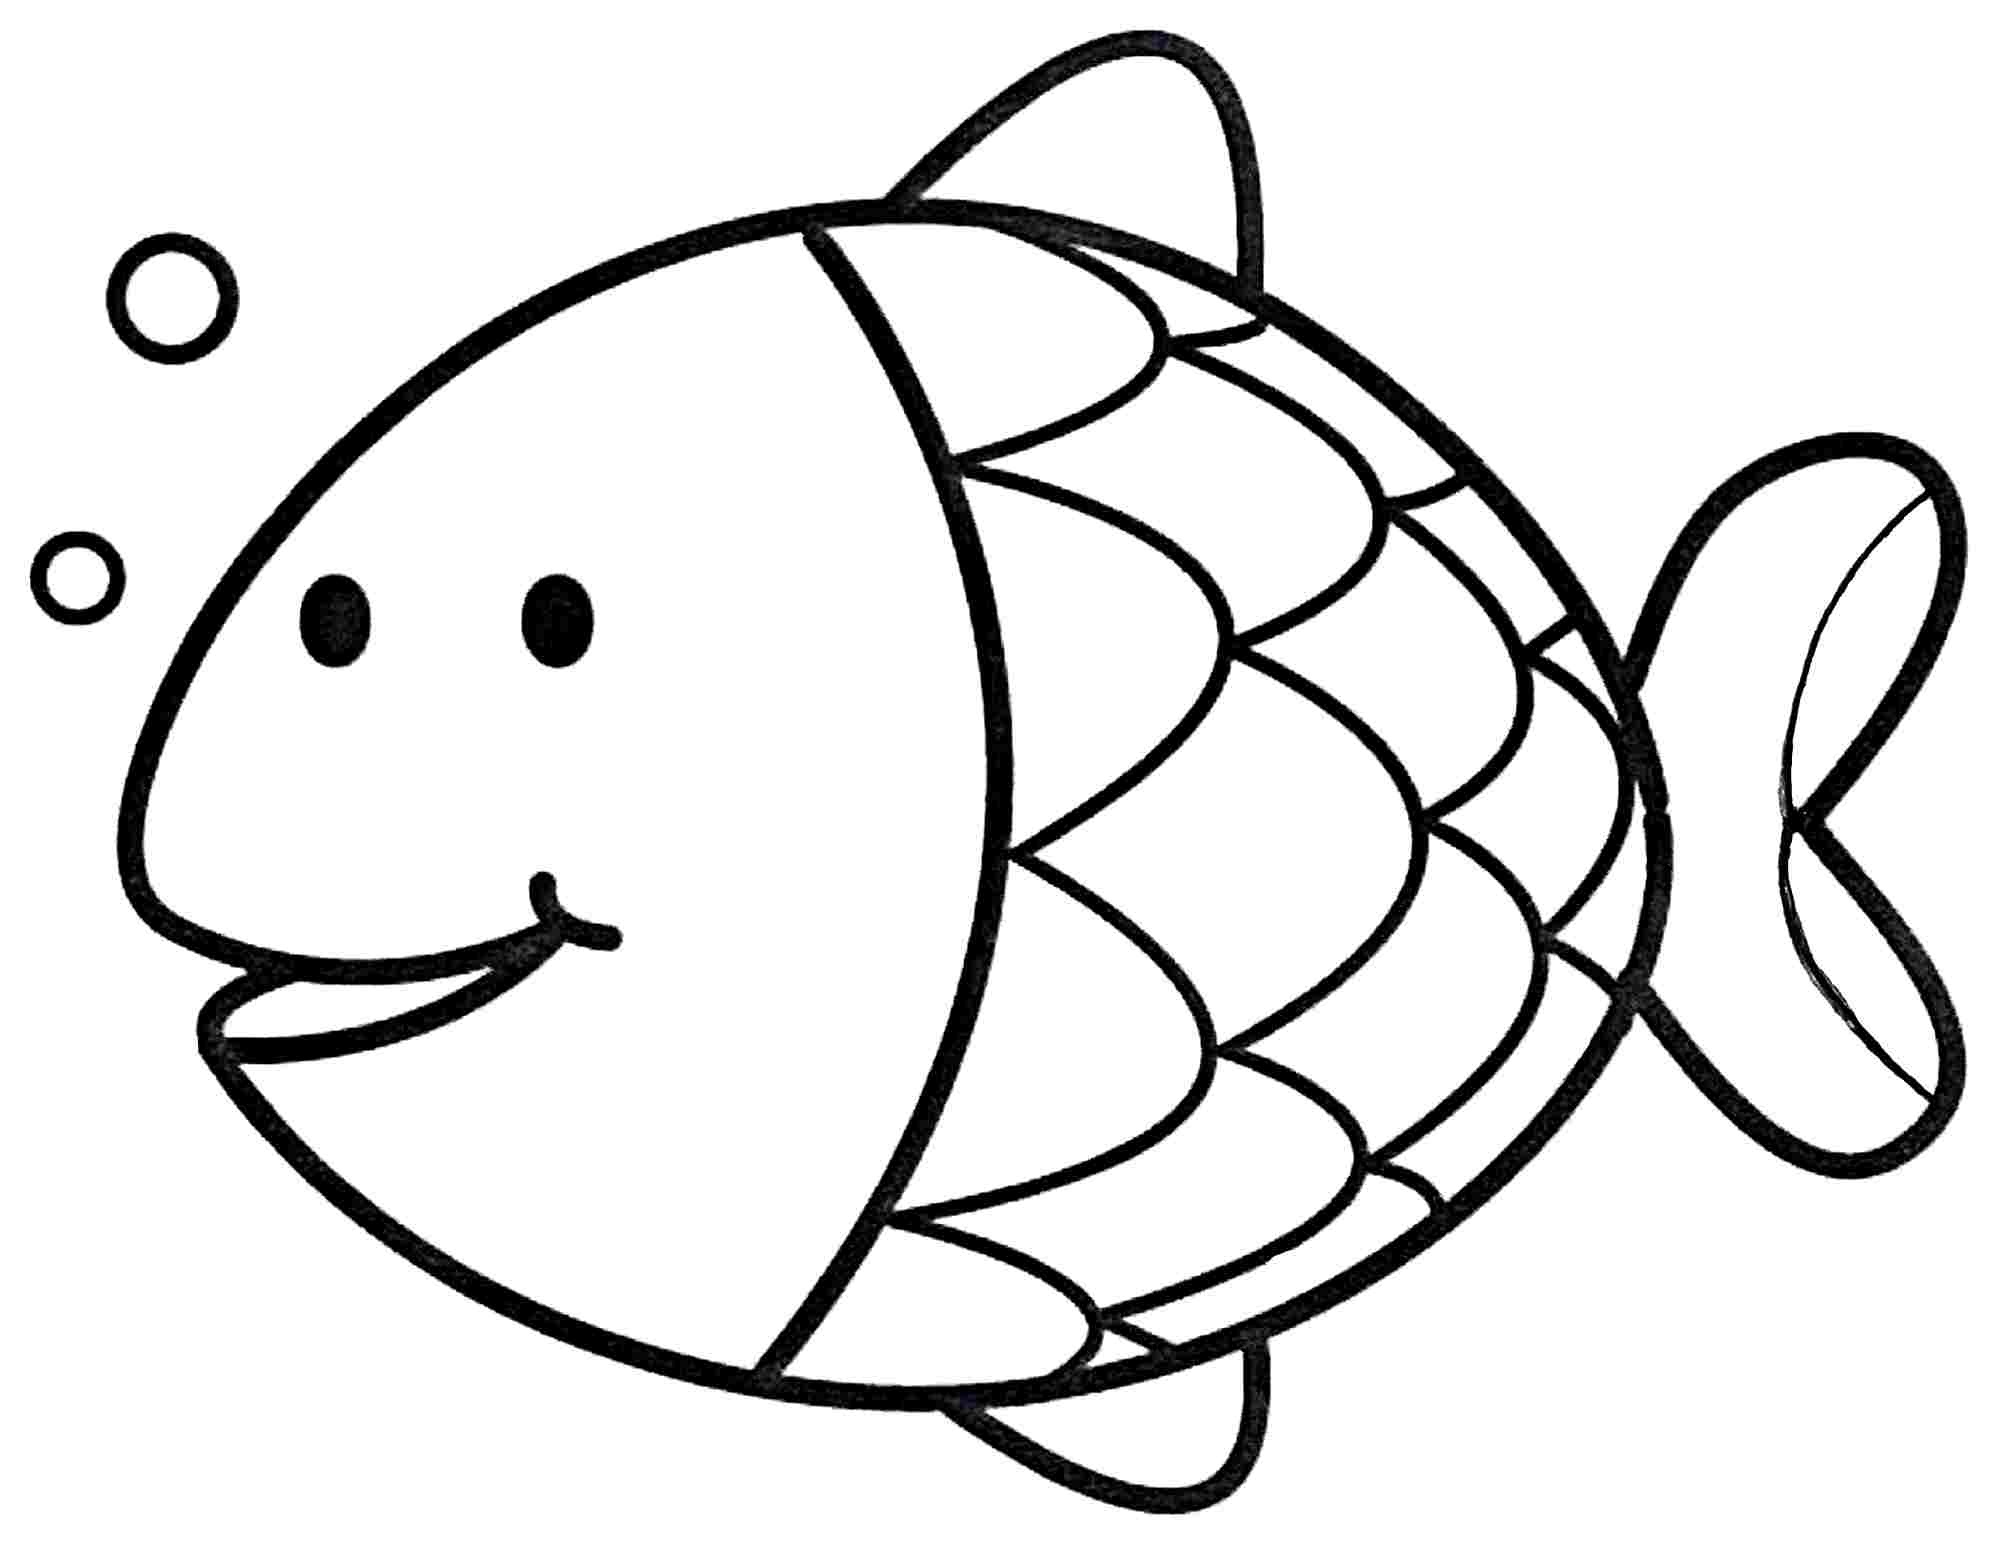 Coloring Book World ~ Free Coloring Sheets For Kids With Printable - Free Printable Coloring Pages For Toddlers